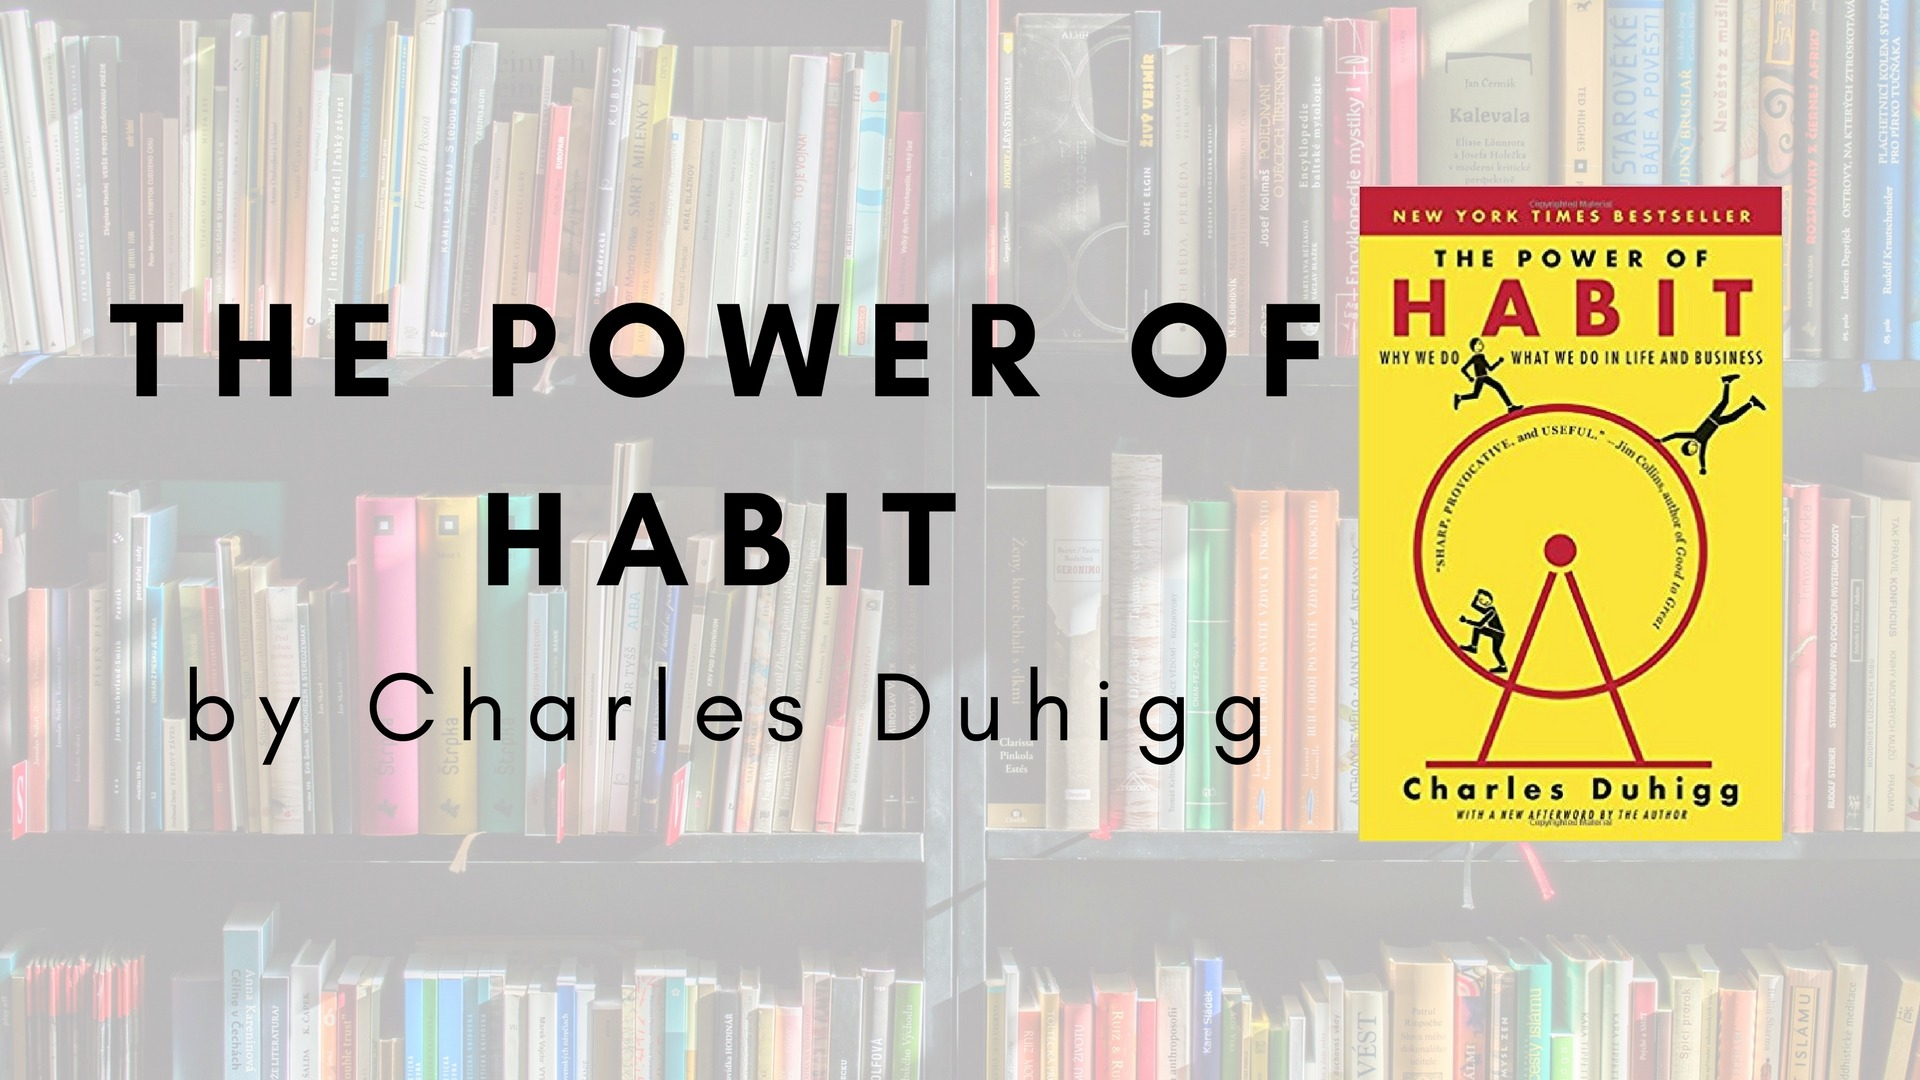 Improve Your Health With The Power Of Habit